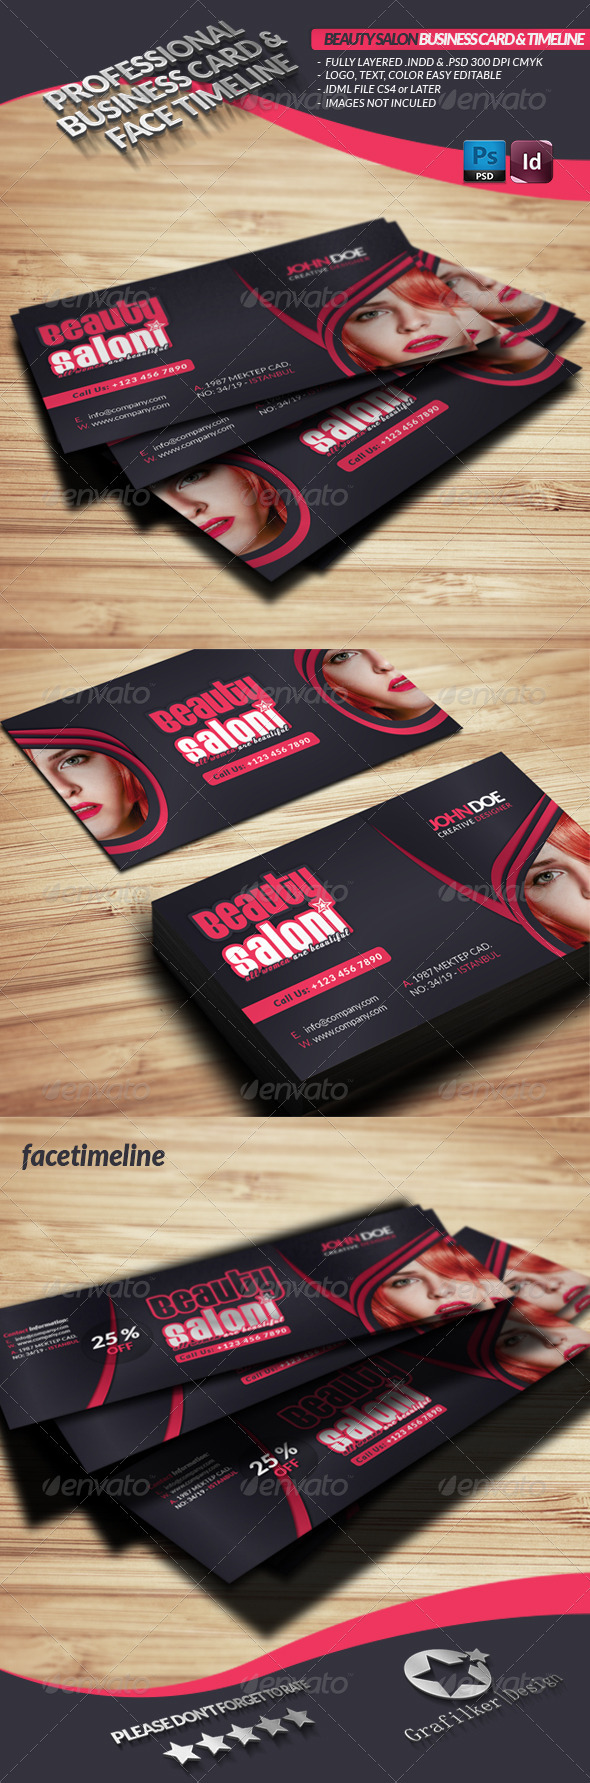 GraphicRiver Beauty Salon Business Card Face Timeline 3567481